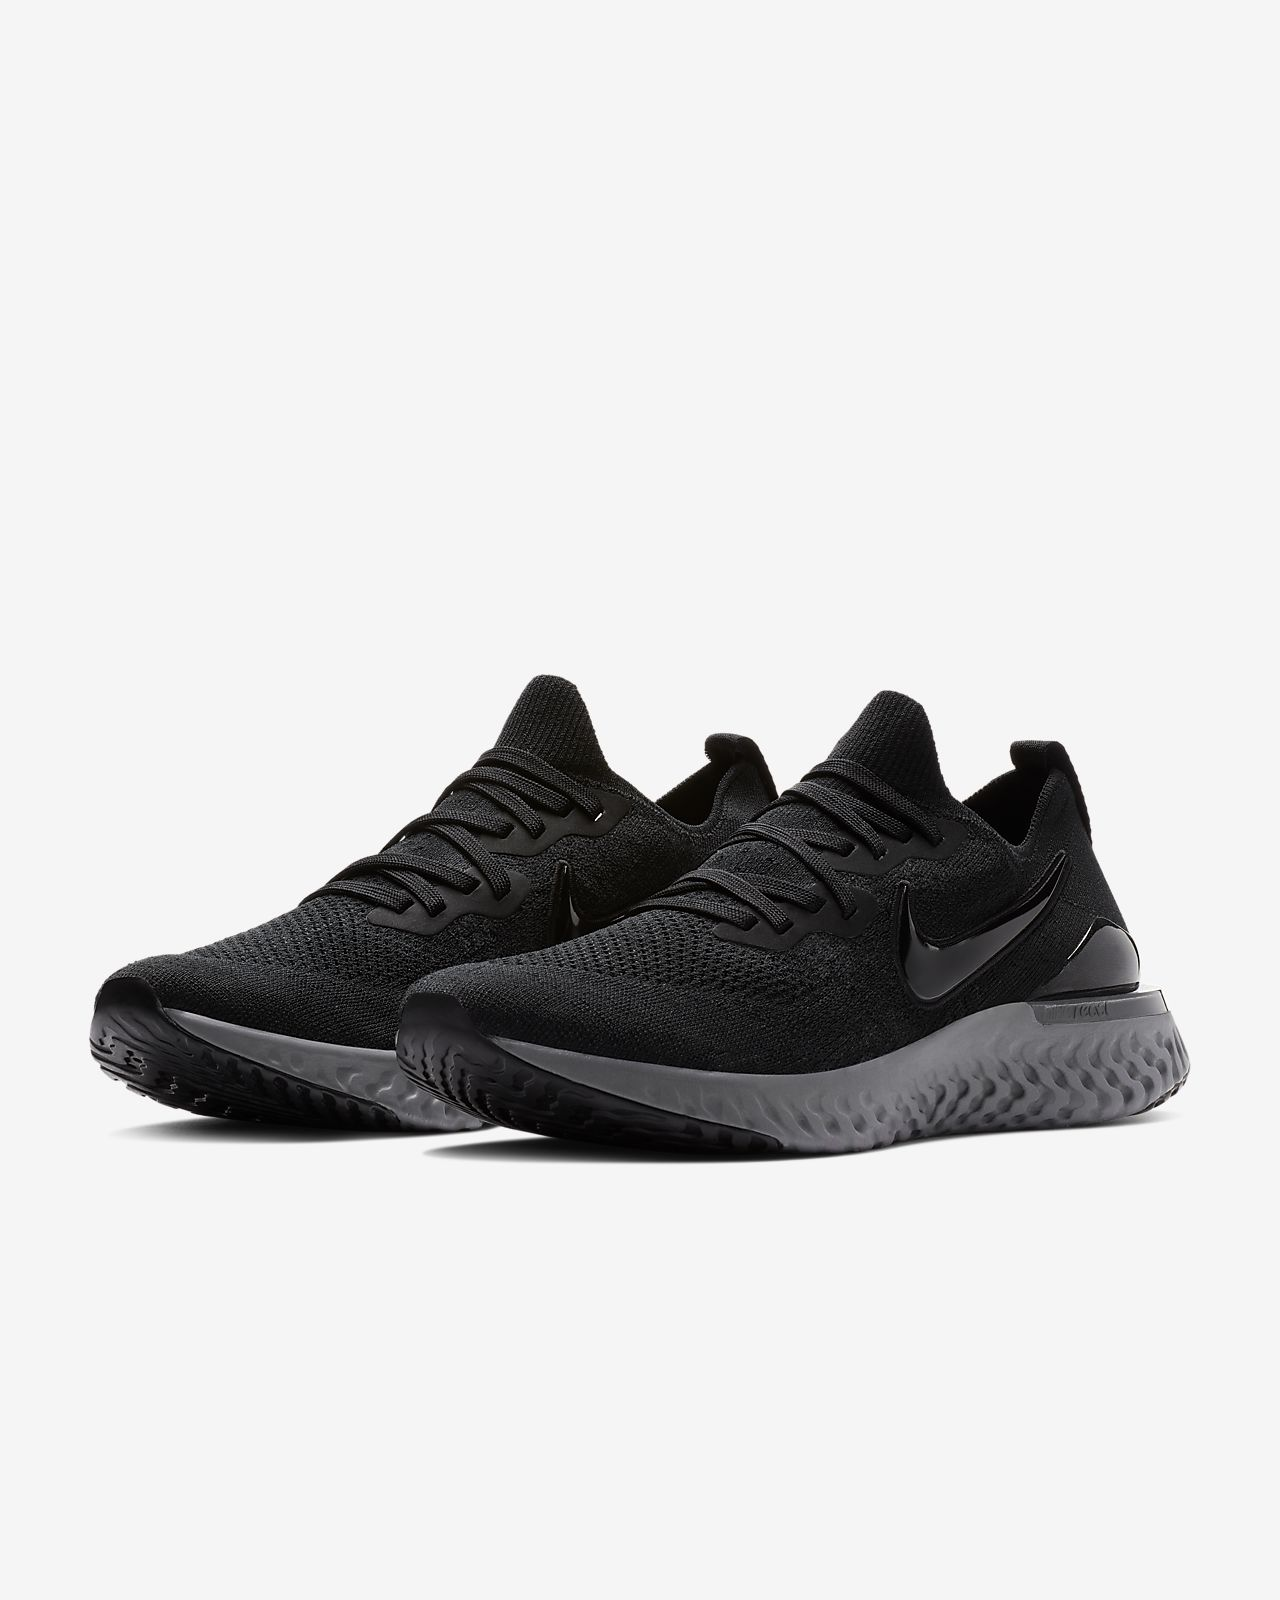 wholesale dealer a34b8 9de83 ... Chaussure de running Nike Epic React Flyknit 2 pour Homme